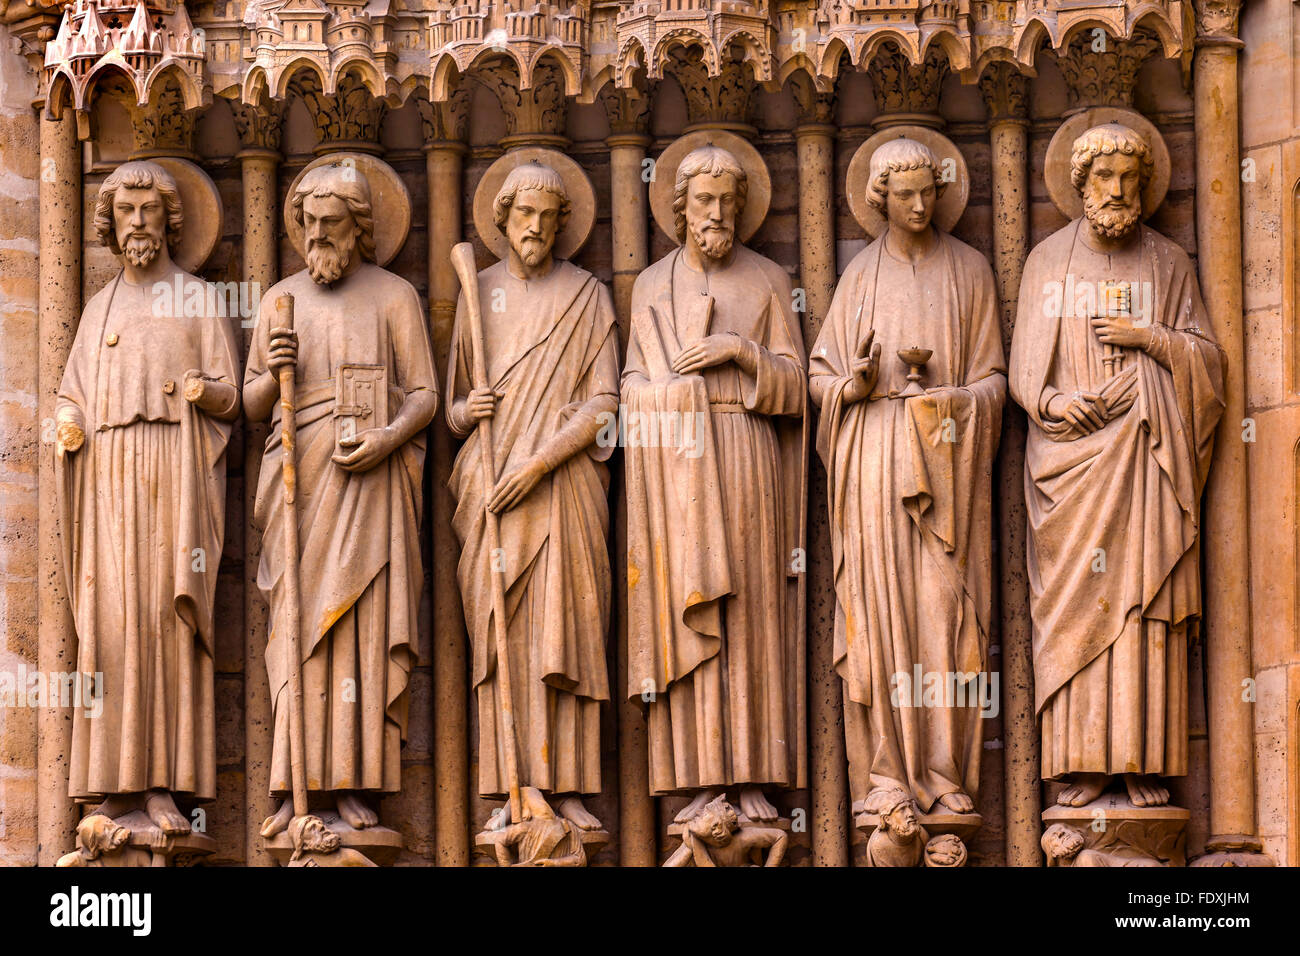 Biblical Saint Statues Door Notre Dame Cathedral Paris France.  Notre Dame was built between 1163 and 1250 AD. - Stock Image